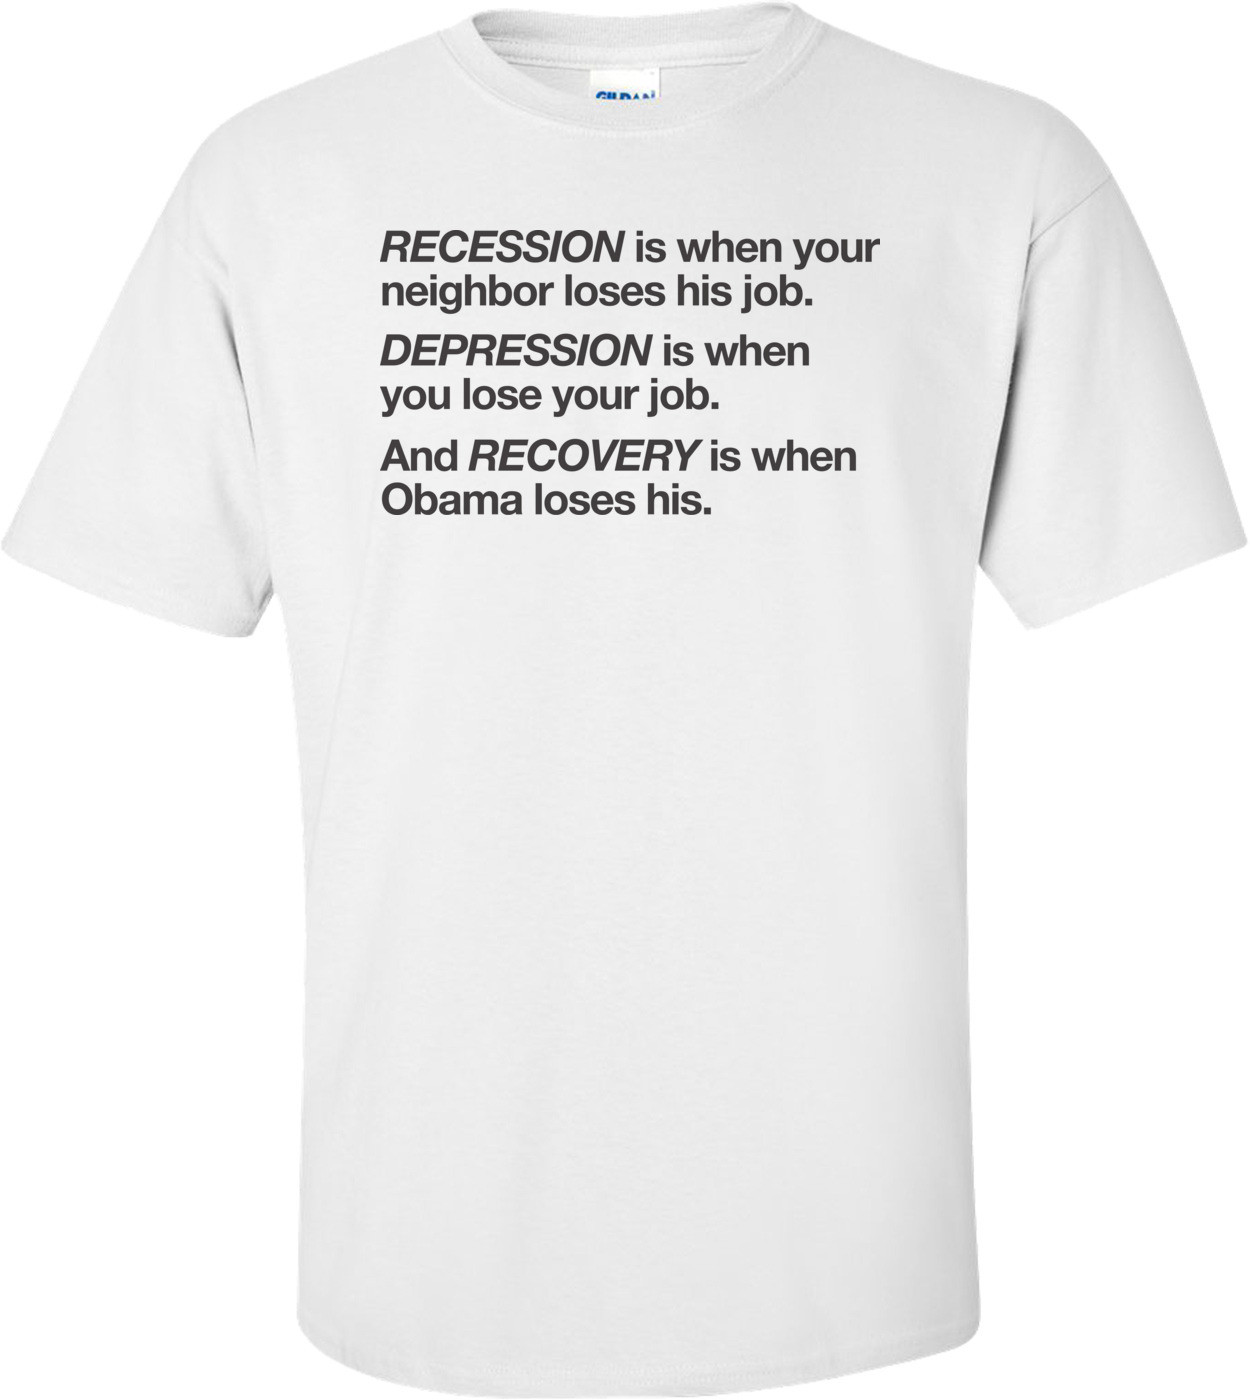 Recession Is When Your Neighbor Loses His Job Depression Is When You Lose Your Job And Recovery Is When Obama Loses His Anti-obama T-shirt